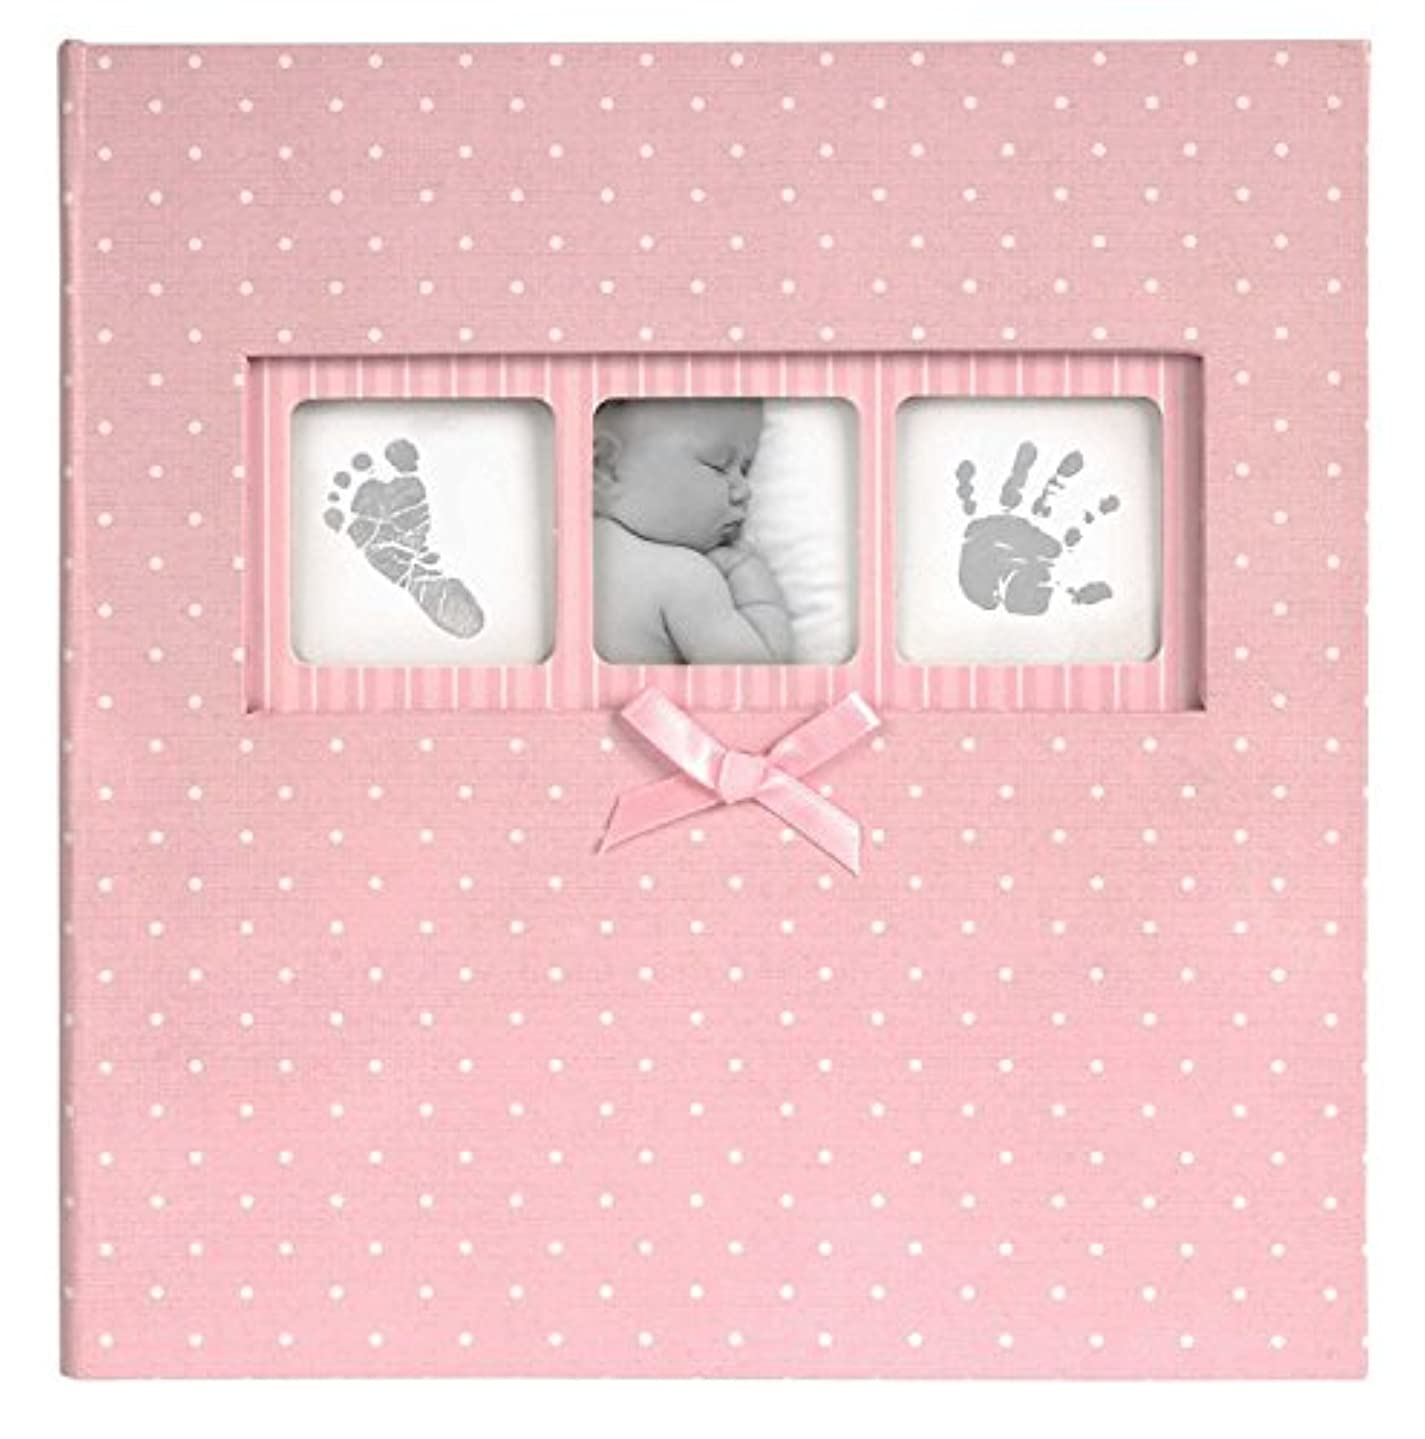 Discovery Channel Innova Editions 50-Page Baby Polka Dot Book Bound Traditional Album, Pink